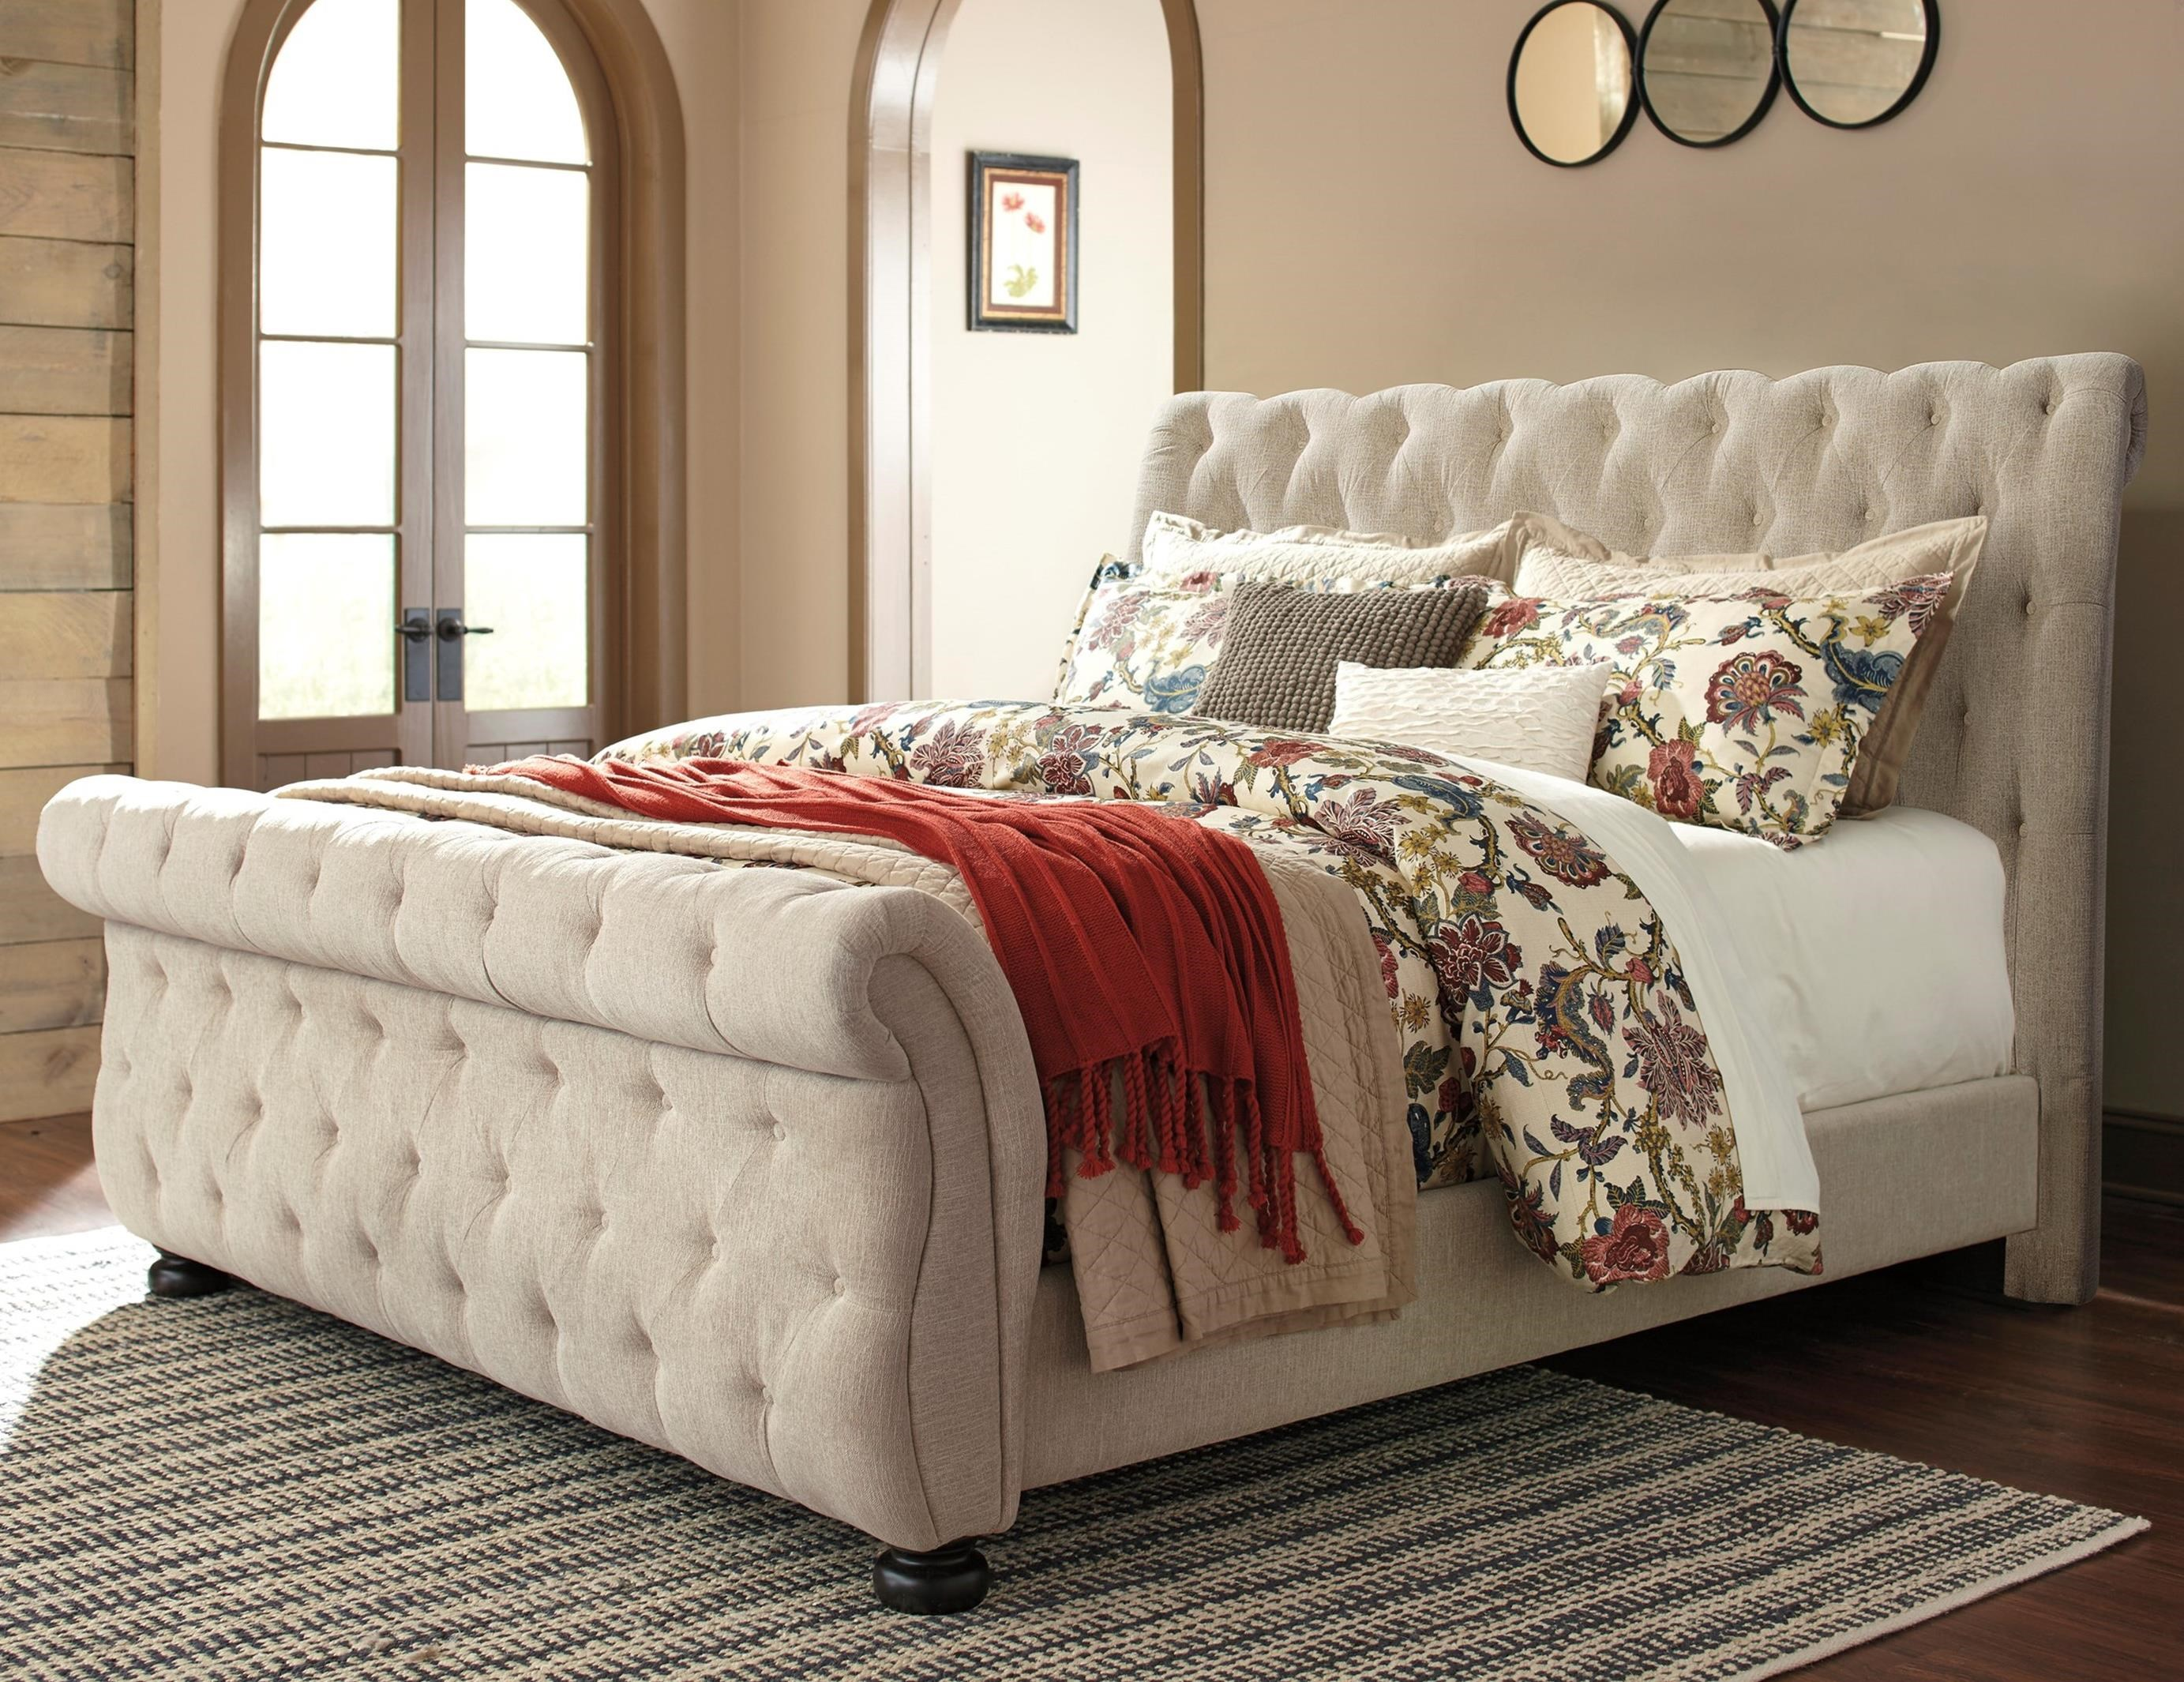 Queen Upholstered Sleigh Bed With Tufting By Signature